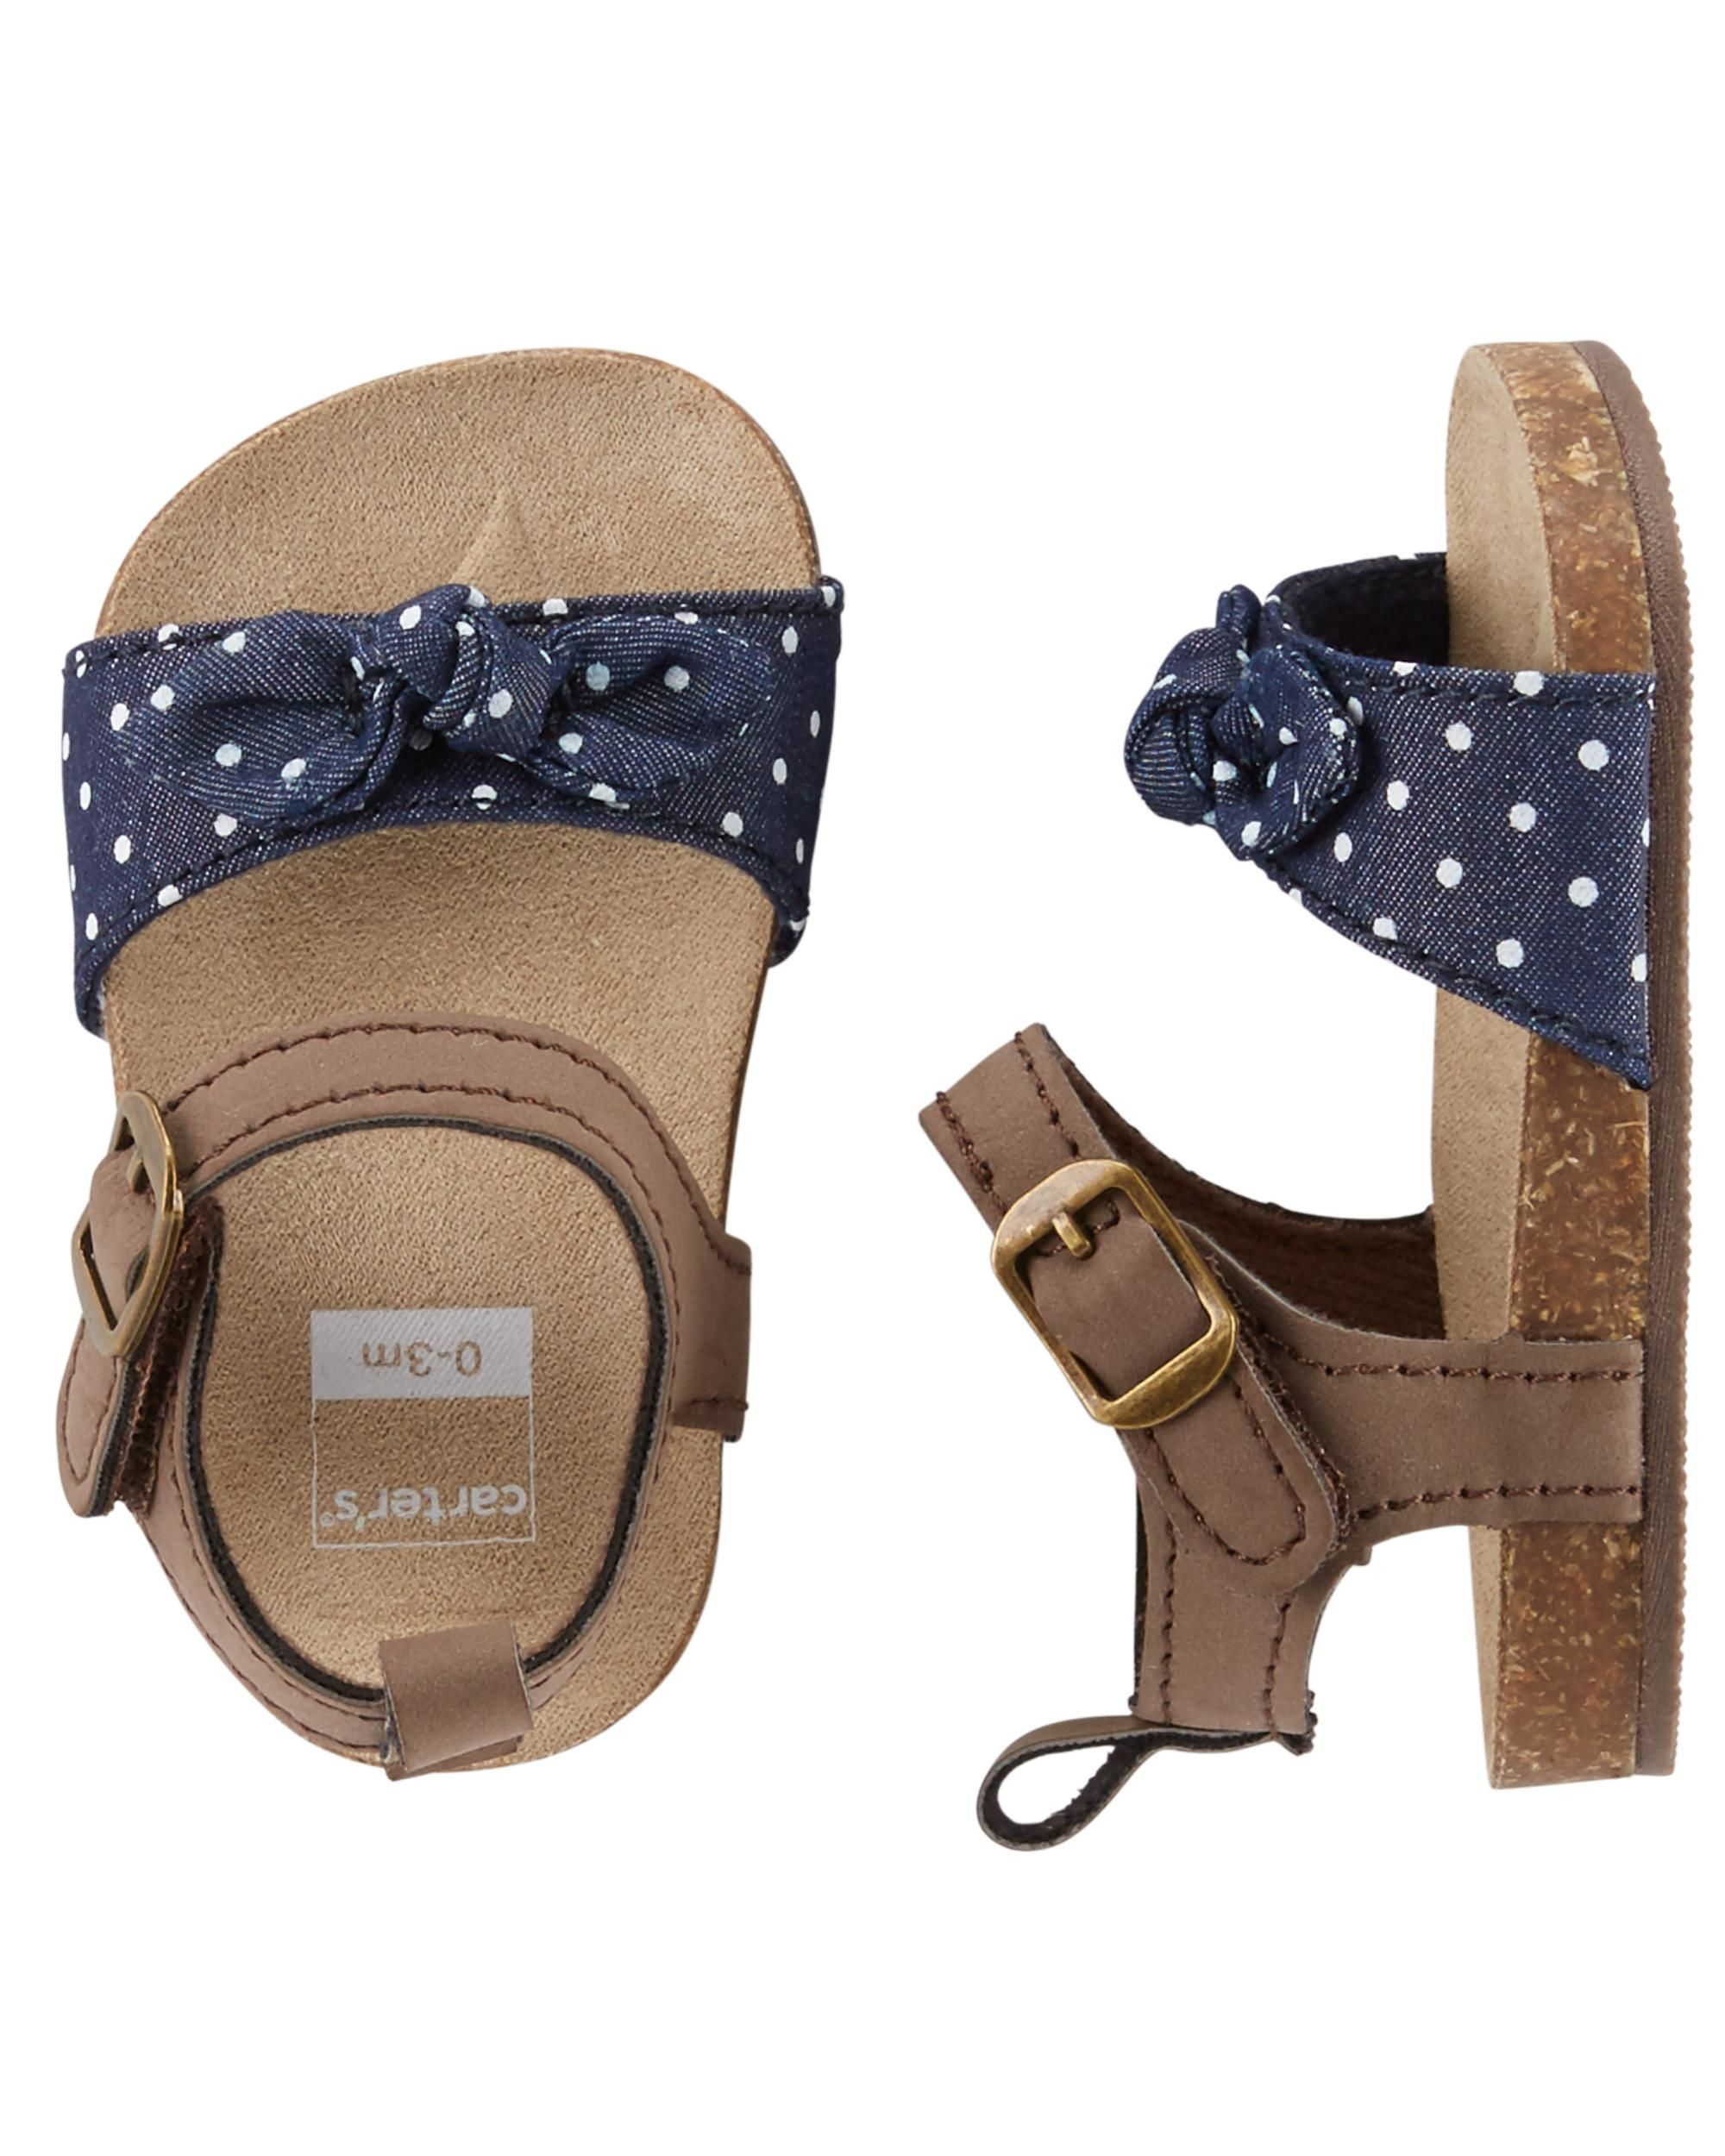 1338d0606 Sandal Crib Shoes | Baby | Baby girl sandals, Baby girl shoes, Baby ...